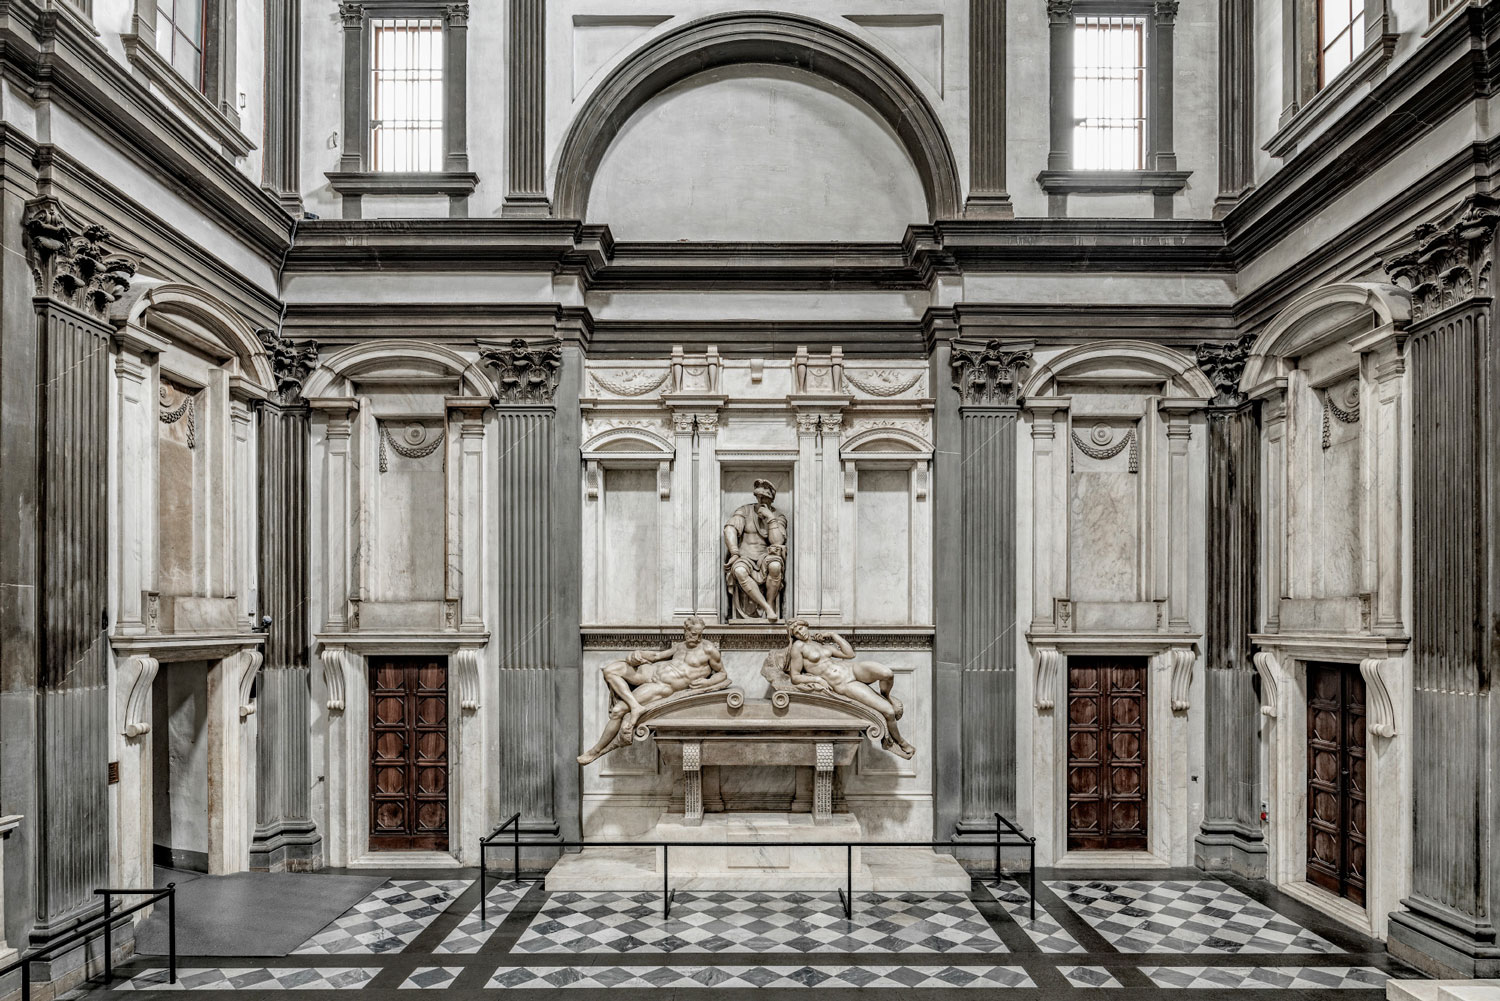 The tomb of Lorenzo in the Medici Chapel (New Sacristy) by Michelangelo